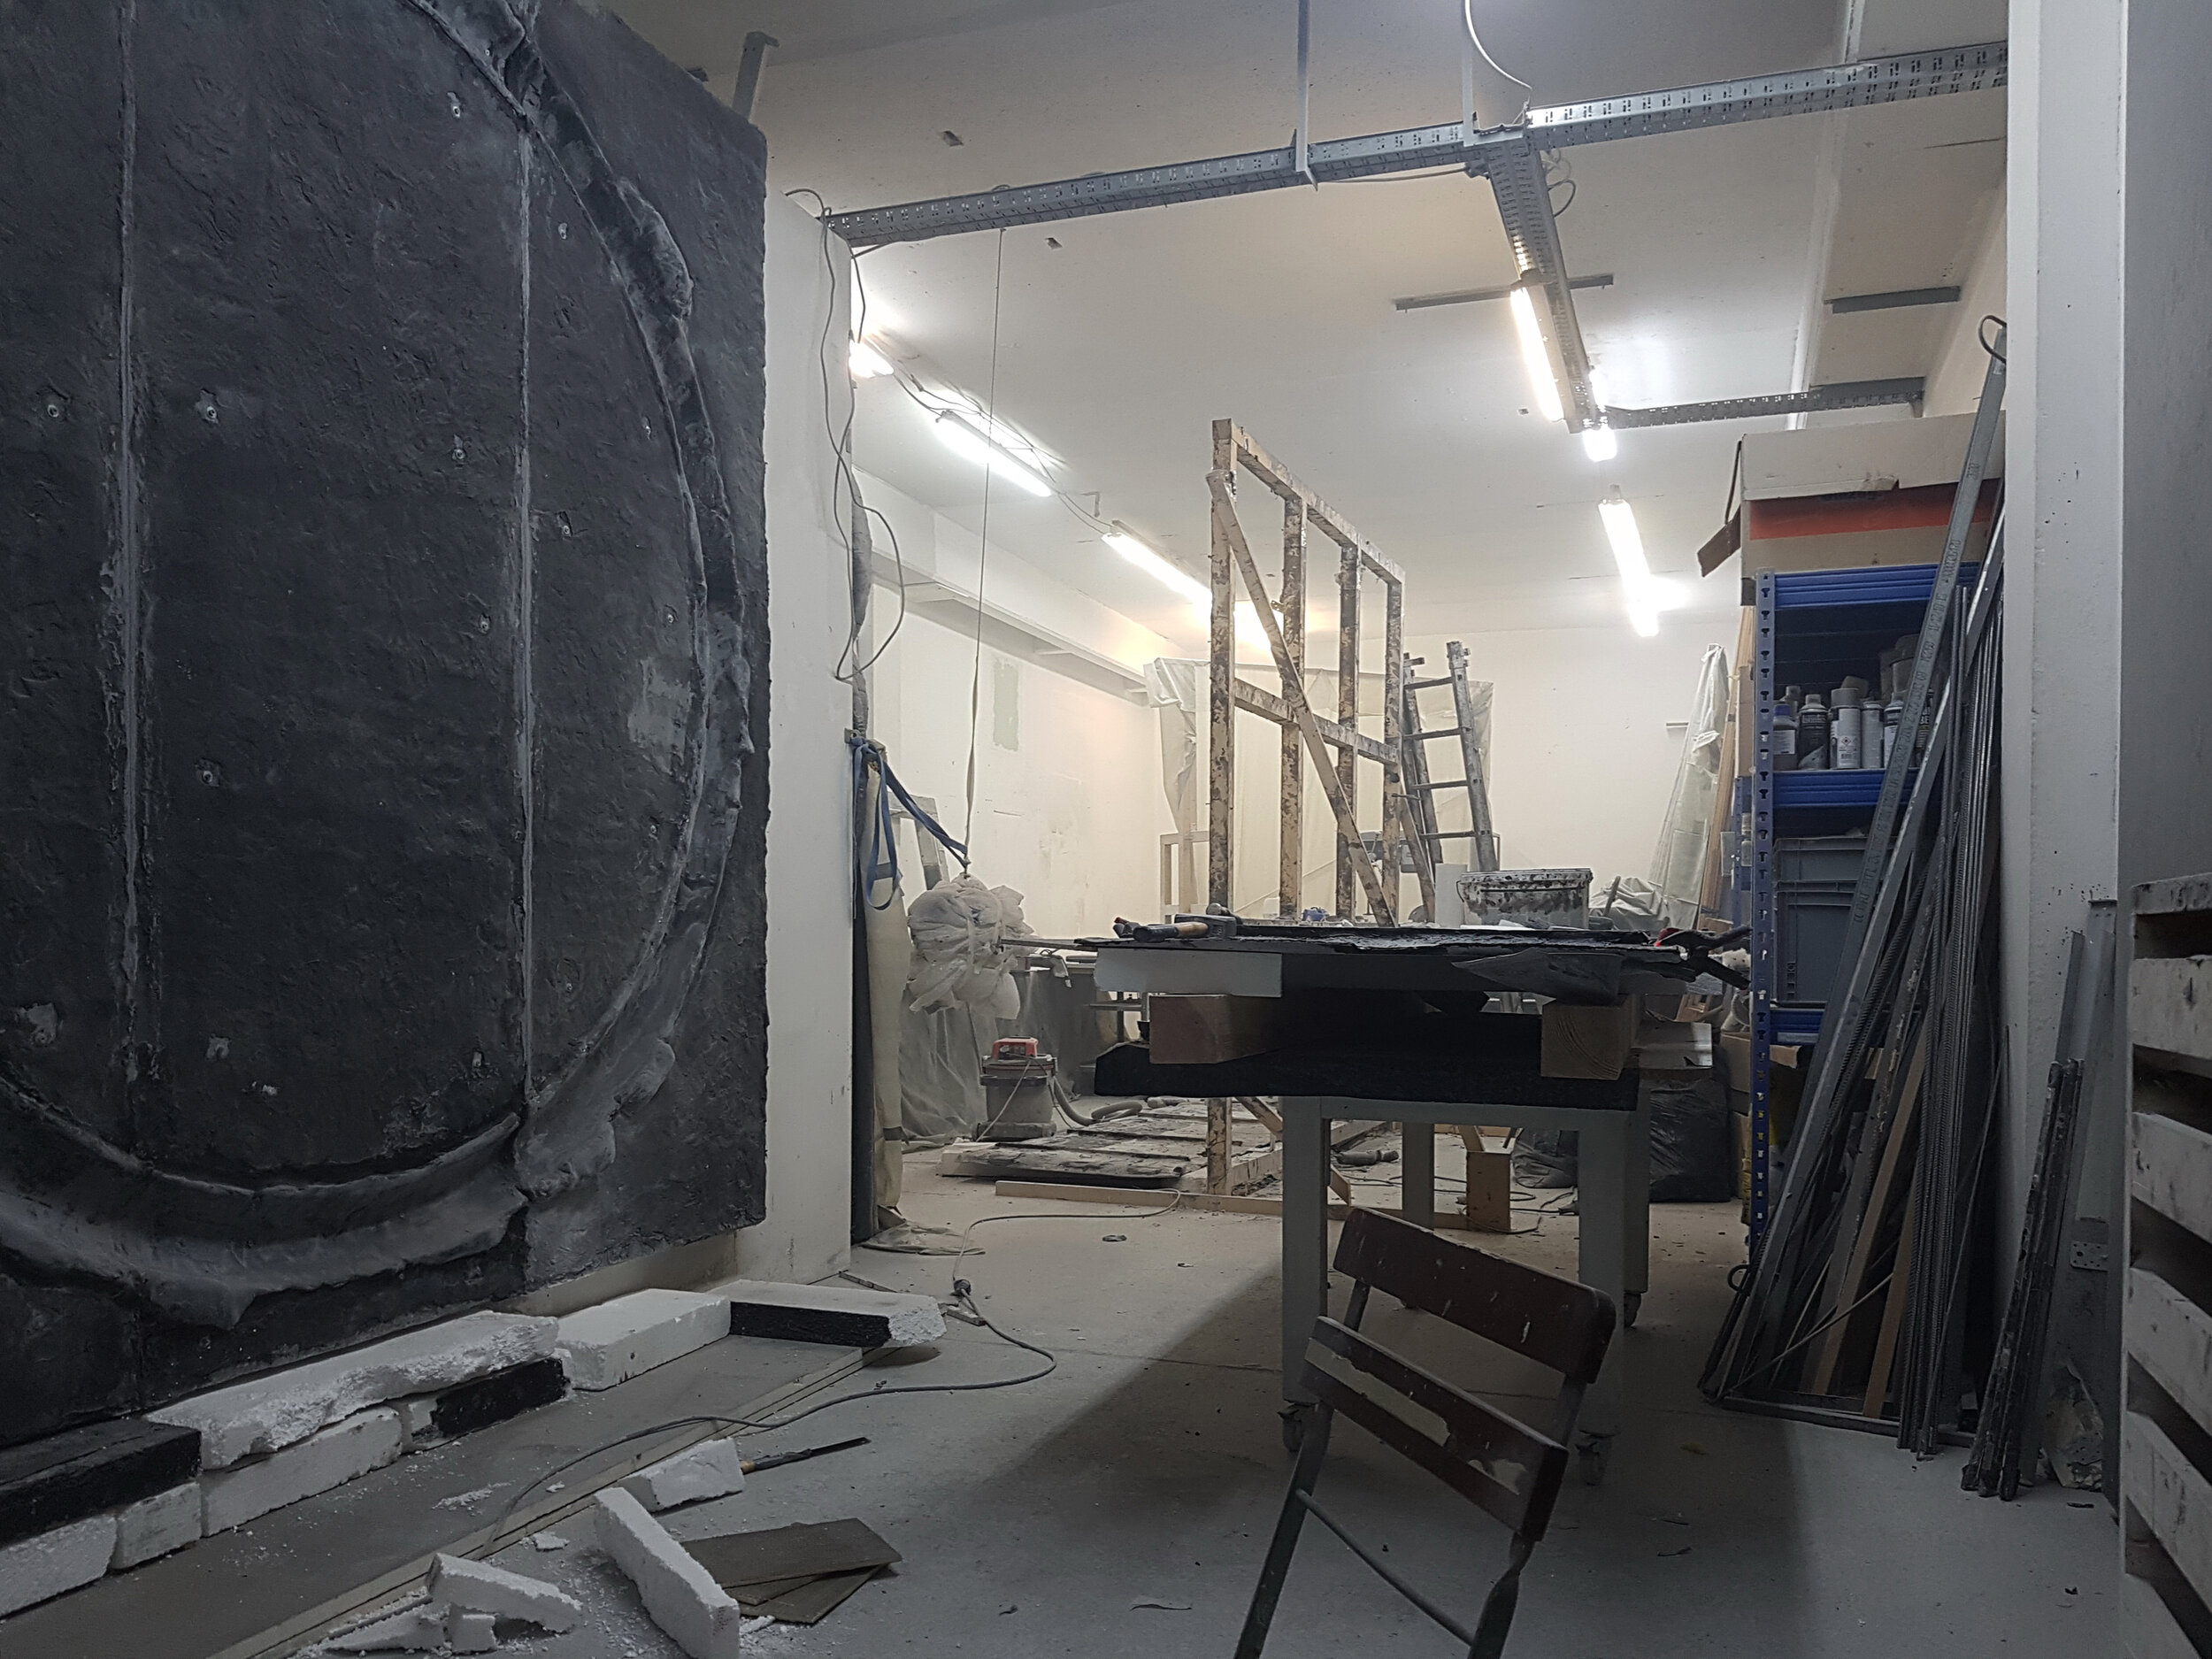 Studio view, Erik Andersen, Berlin 2019